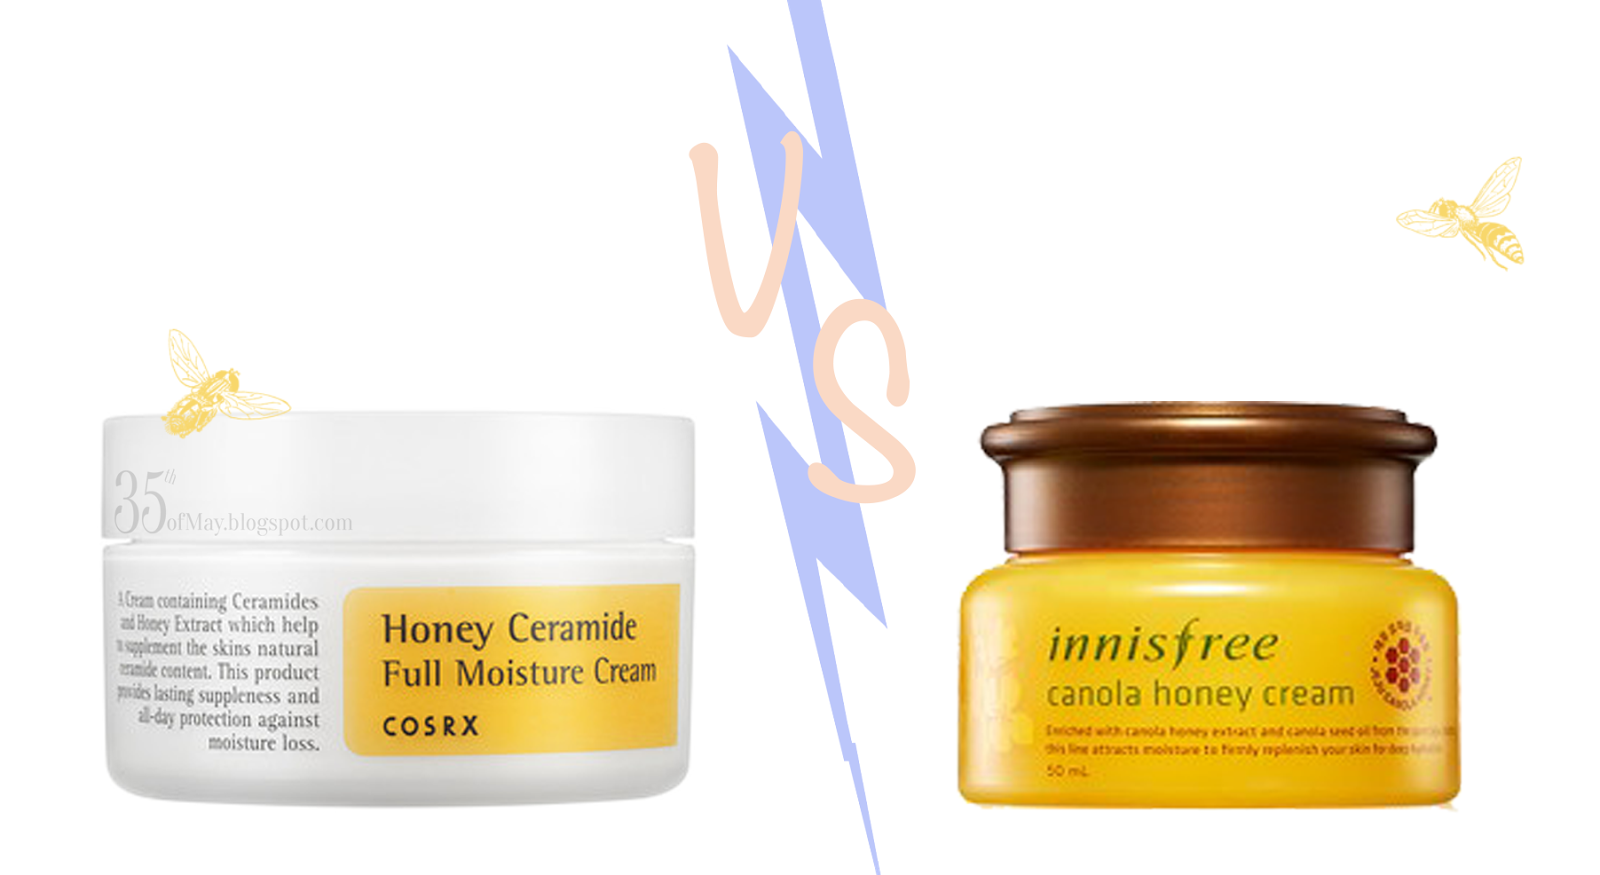 Innisfrees Canola Honey Cream vs Cosrx Ceramide and Honey Cream